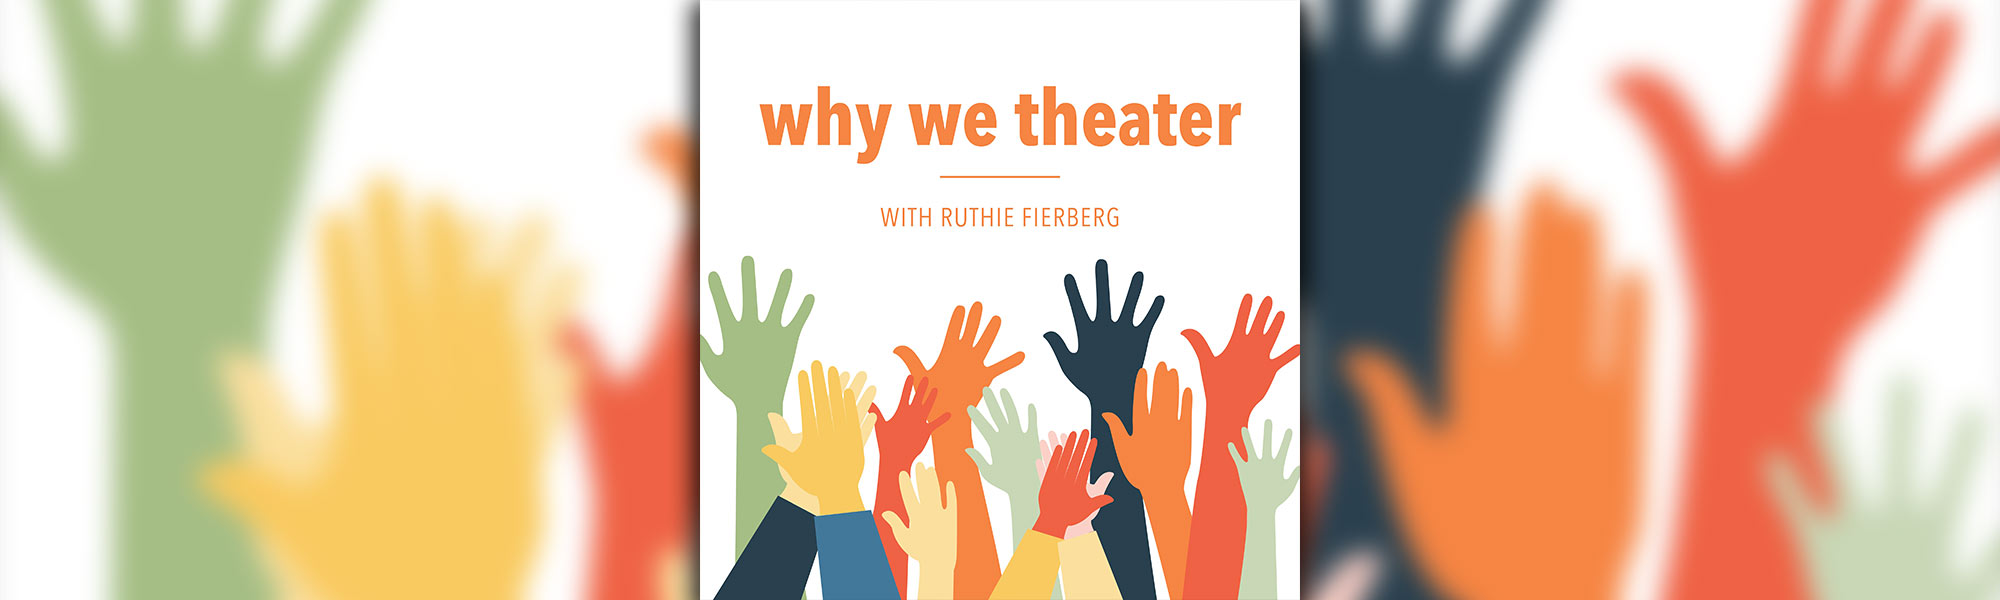 Why We Theater banner